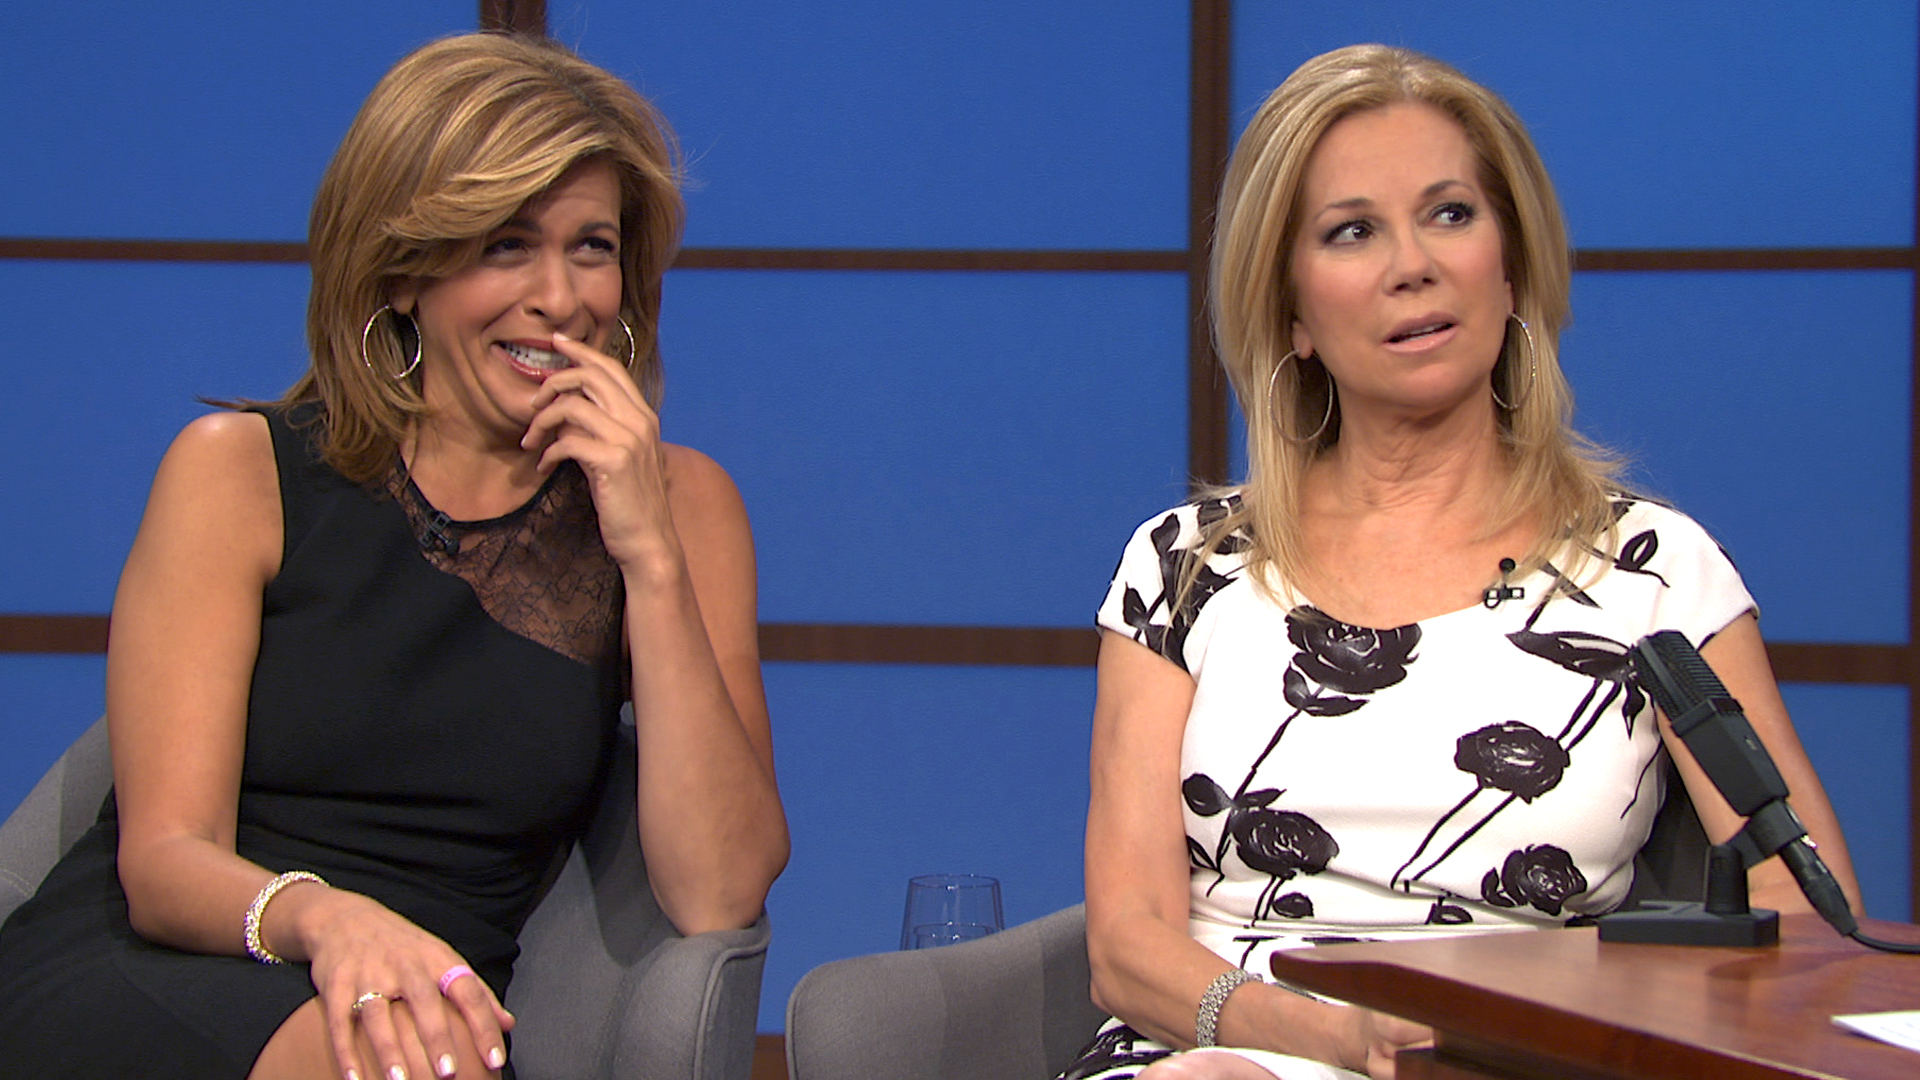 Intervention kathie lee and hoda video late night - Nbc today show kathie lee and hoda ...